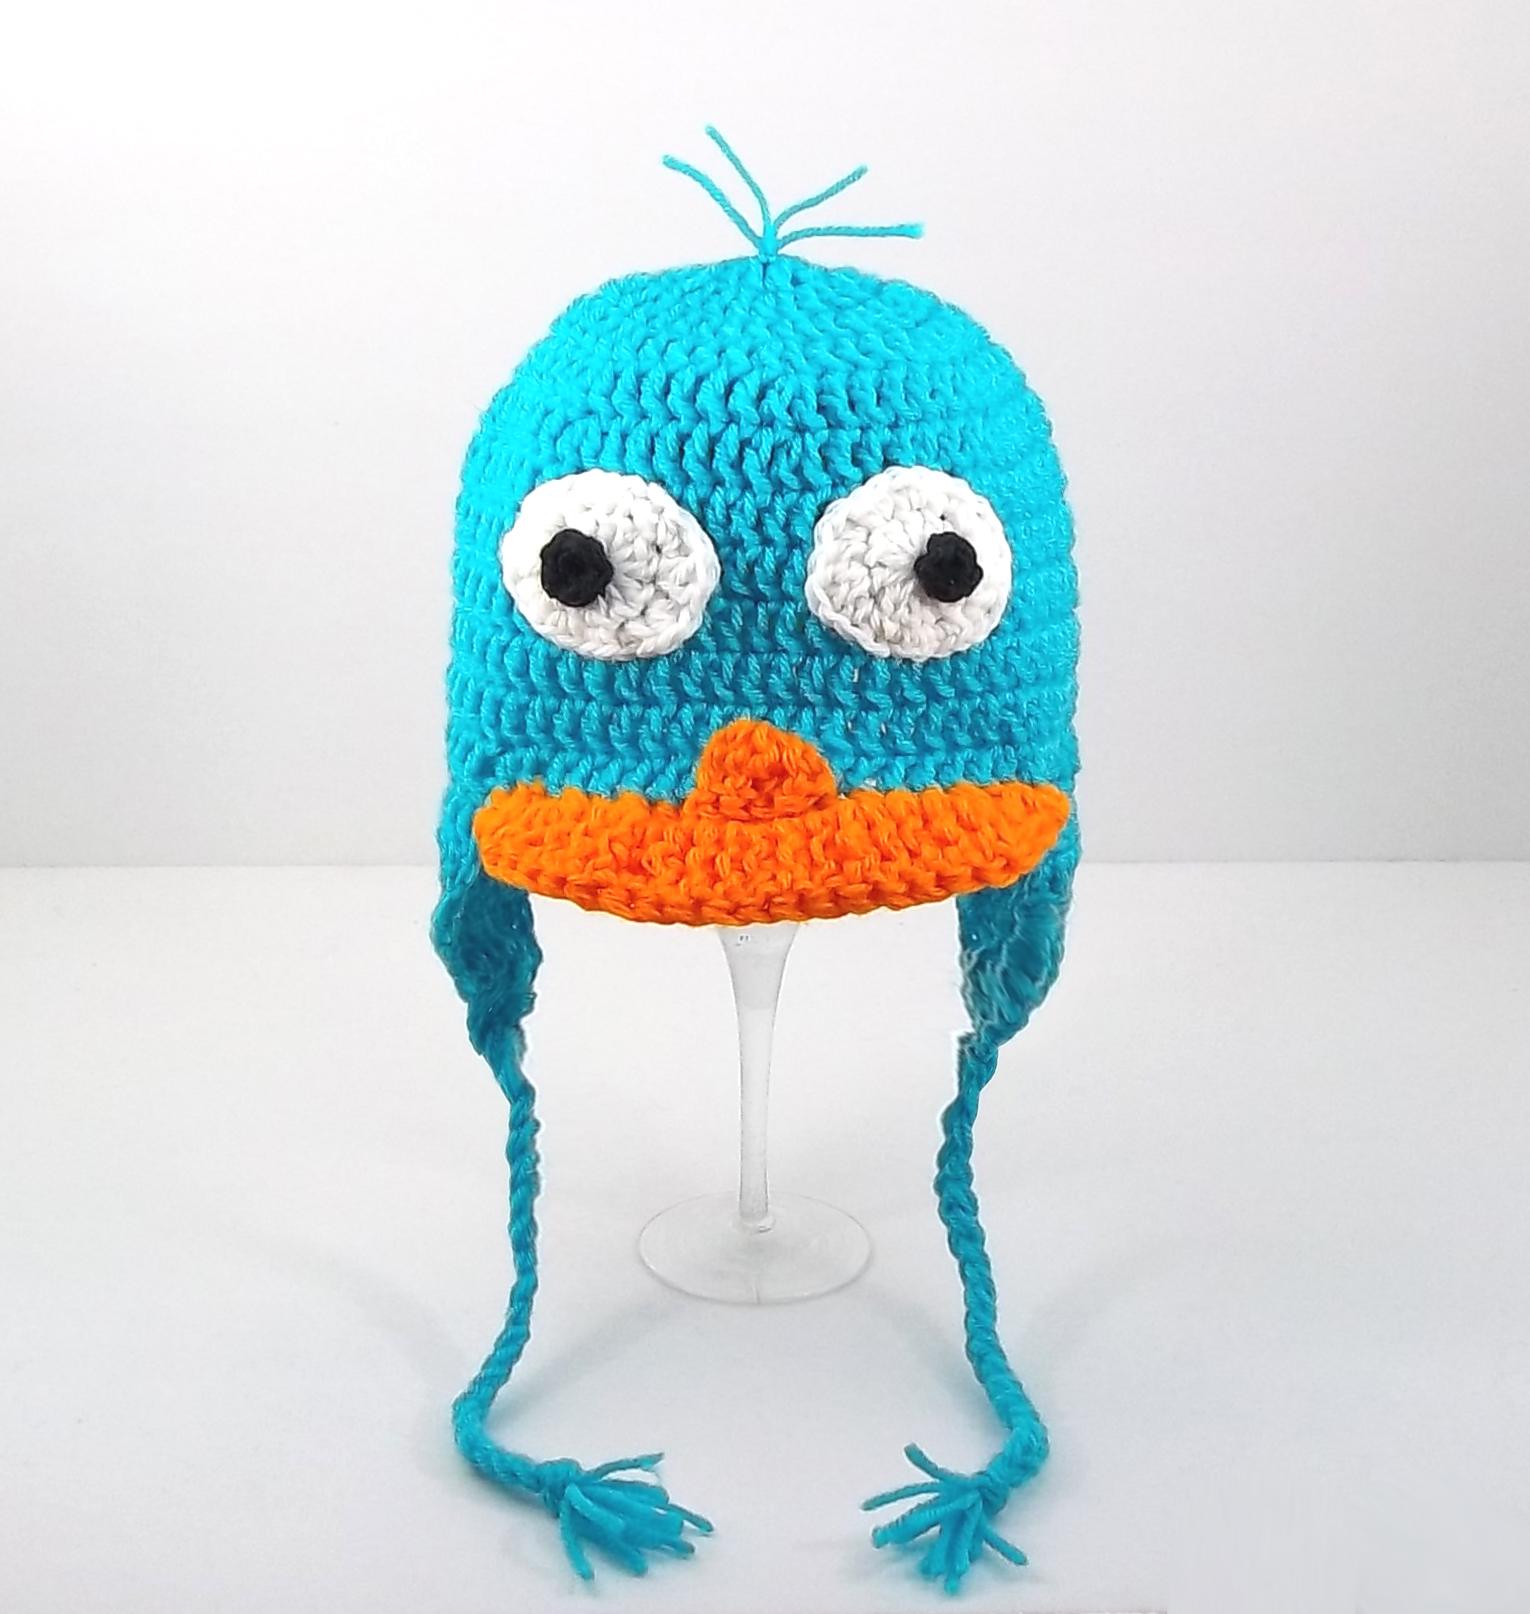 Perry the Platypus Earflap Hat from Phineas and Ferb